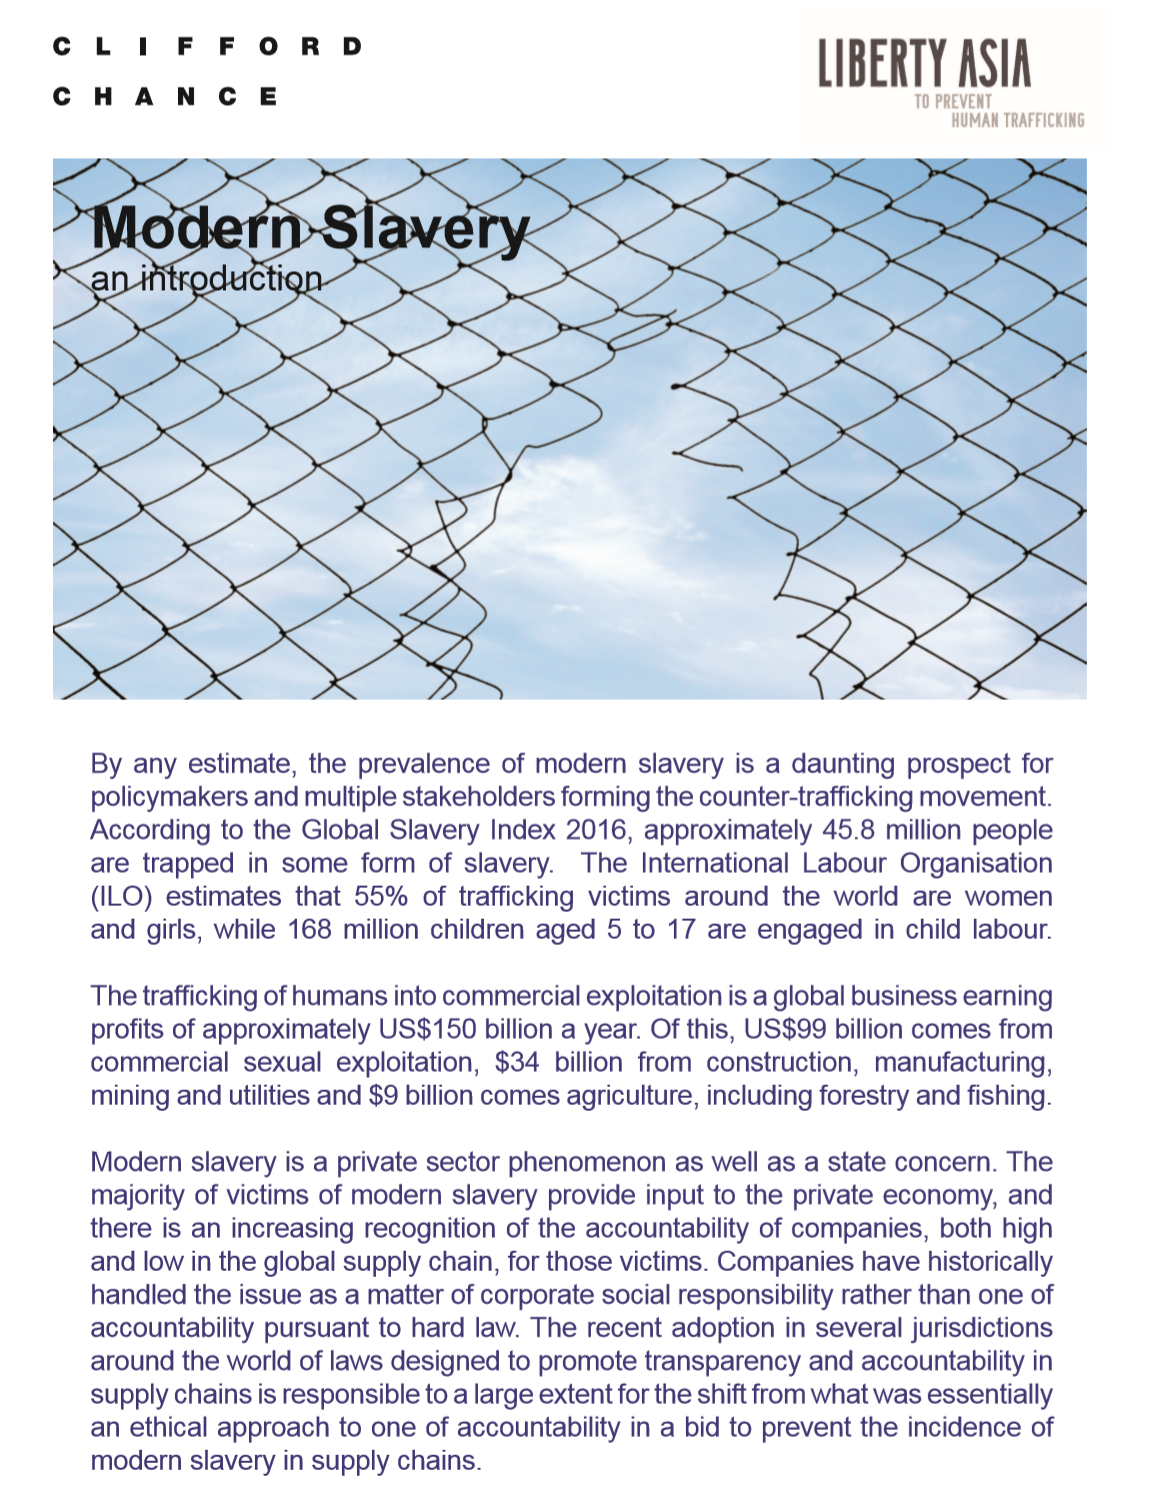 This White Paper looks at normative and legislative trends taken to address modern slavery ranging from the global to the national and state level. The paper also analyzes the impact of the current legislations on corporate disclosure and transparency and discusses how a patchwork of diverse legislations which differs from jurisdiction to jurisdiction in scope and application, and across different industries should lead to a development of a global standard. - By: Liberty Shared and Clifford Chance